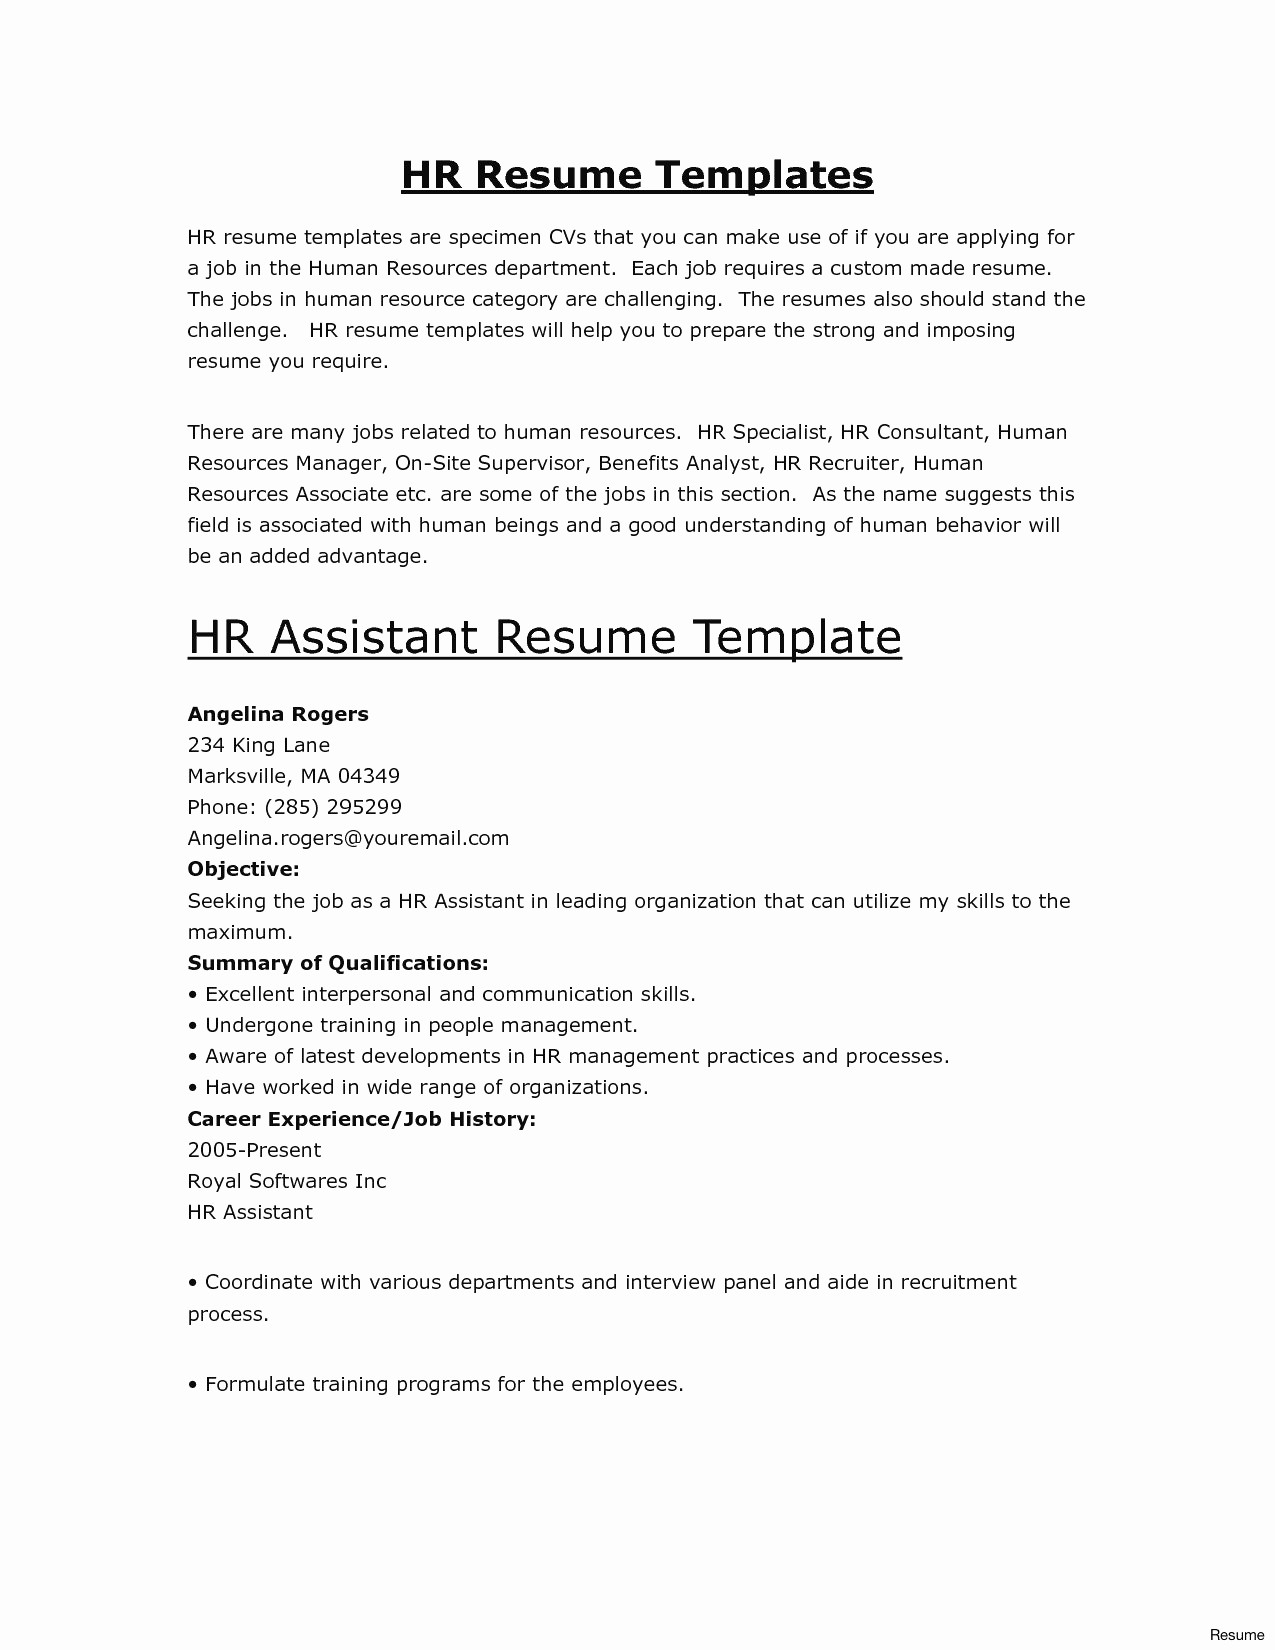 Verification Letter Template - Inspirational Employment Verification Letter Template